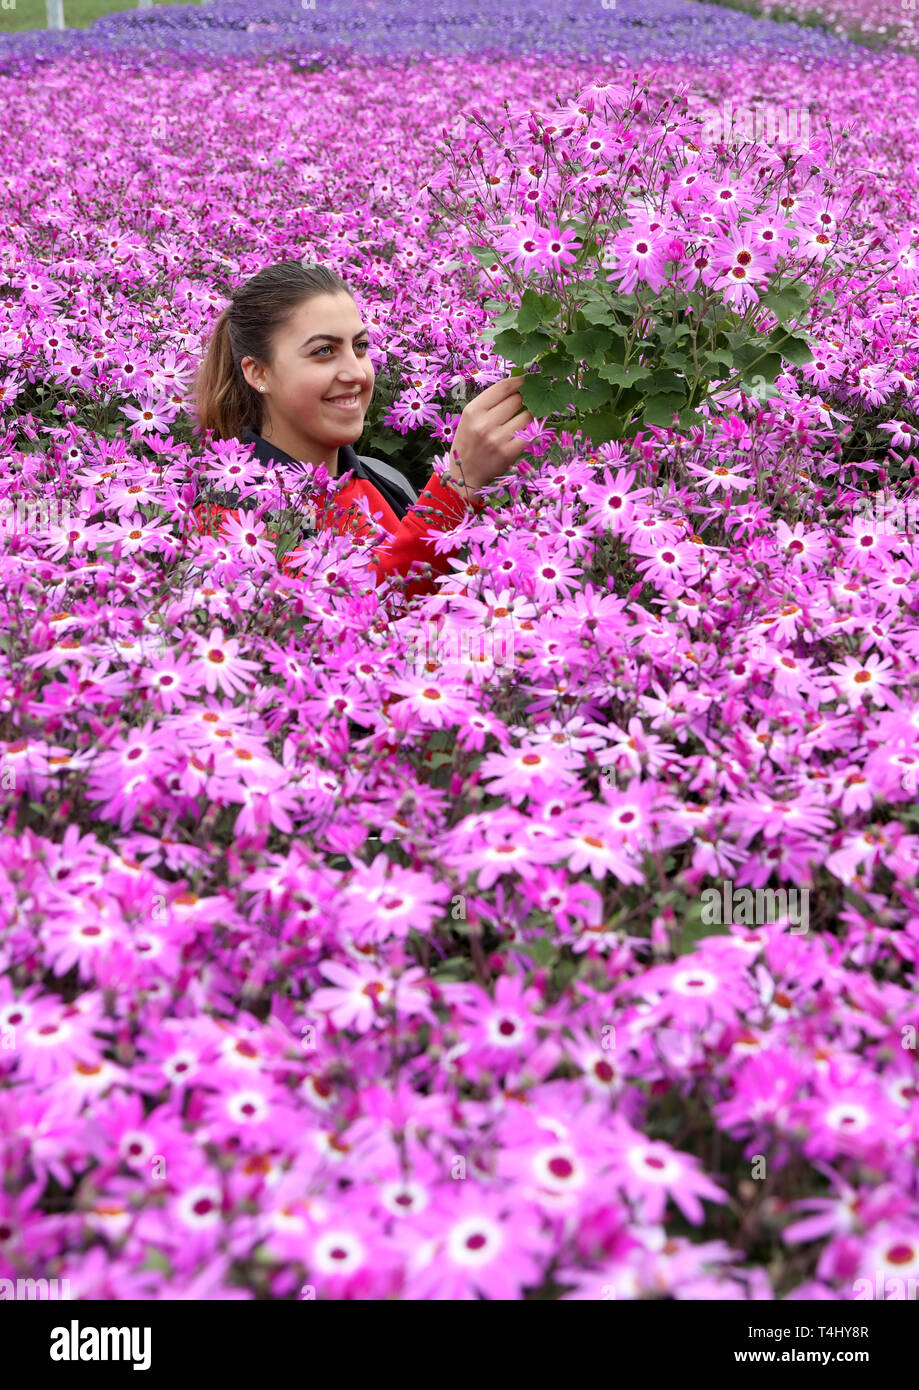 Spalding, Lincolnshire, UK. 16th Apr 2019. It's a blaze of colour in the glasshouse as Maria Constantinescu stands amongst thousands of Senetti flowers at Neame Lea Nurseries in Spalding, are in perfect condition to hit the shops for Easter Bank Holiday weekend, with a warm weekend forecast. Flowers, Neame Lea Nurseries, Spalding, Lincs., April 16, 2019. Credit: Paul Marriott/Alamy Live News - Stock Image